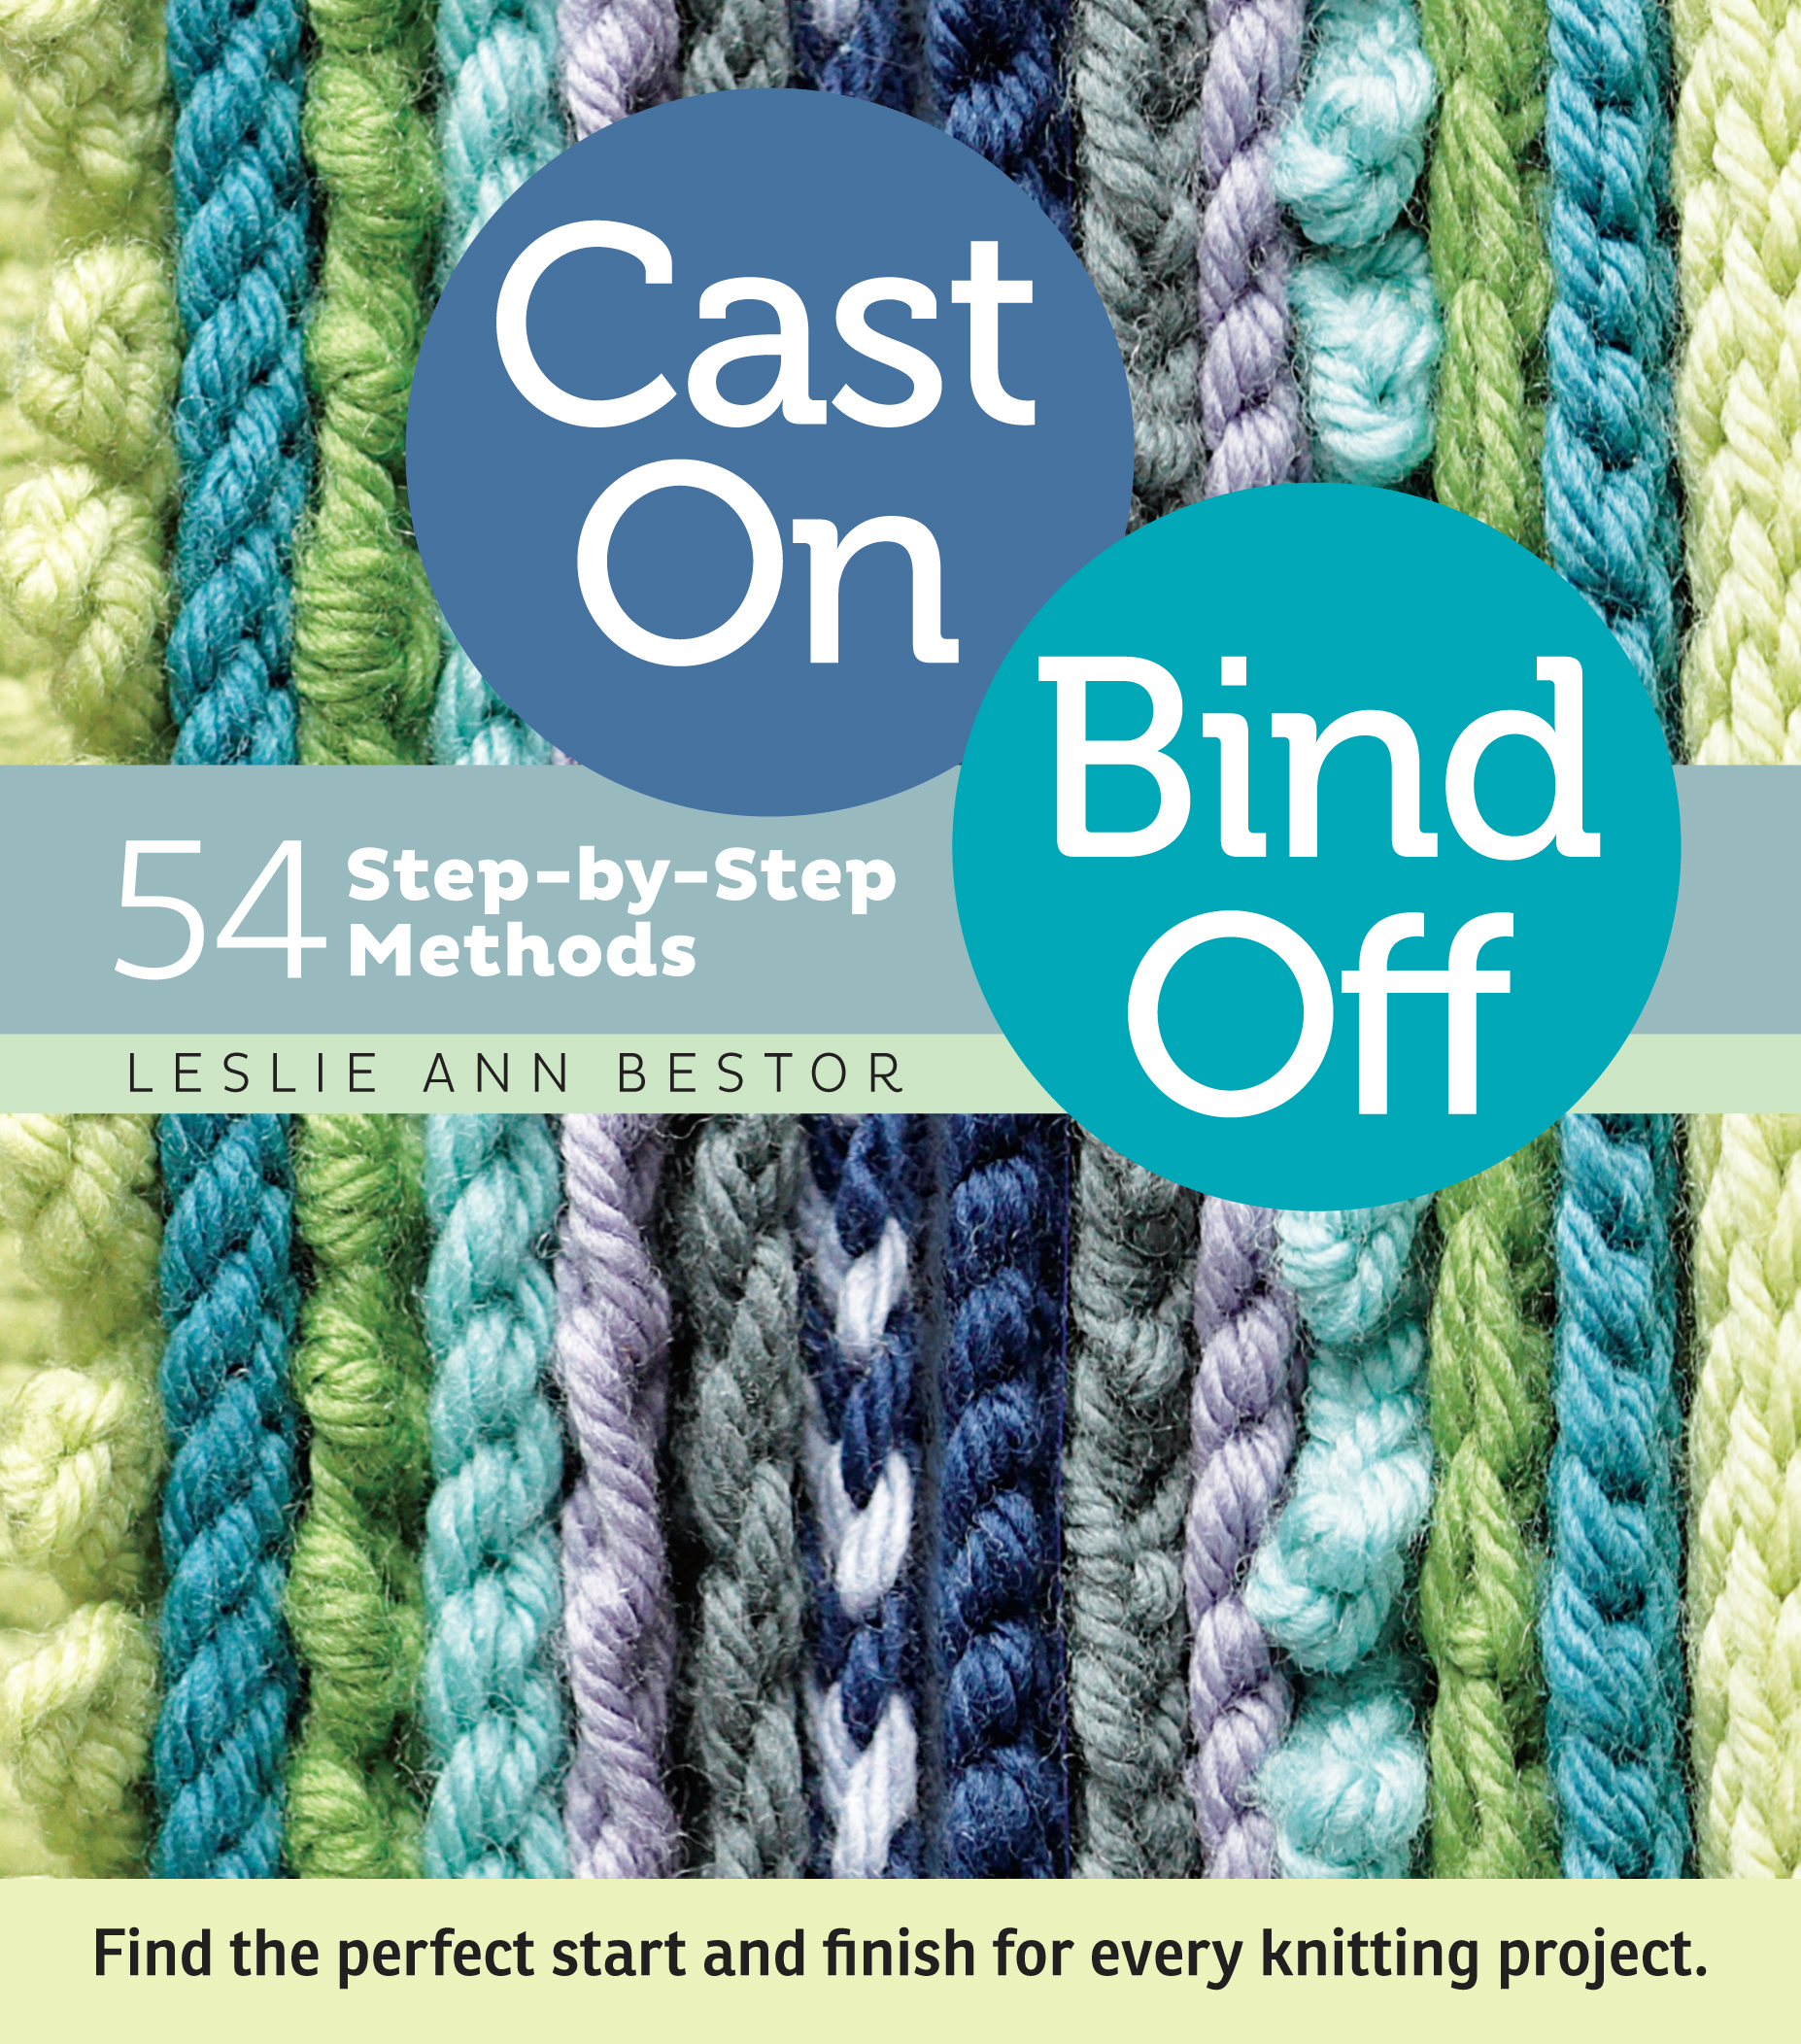 Cast On, Bind Off 54 Step-by-Step Methods; Find the perfect start and finish for every knitting project - Leslie Ann Bestor